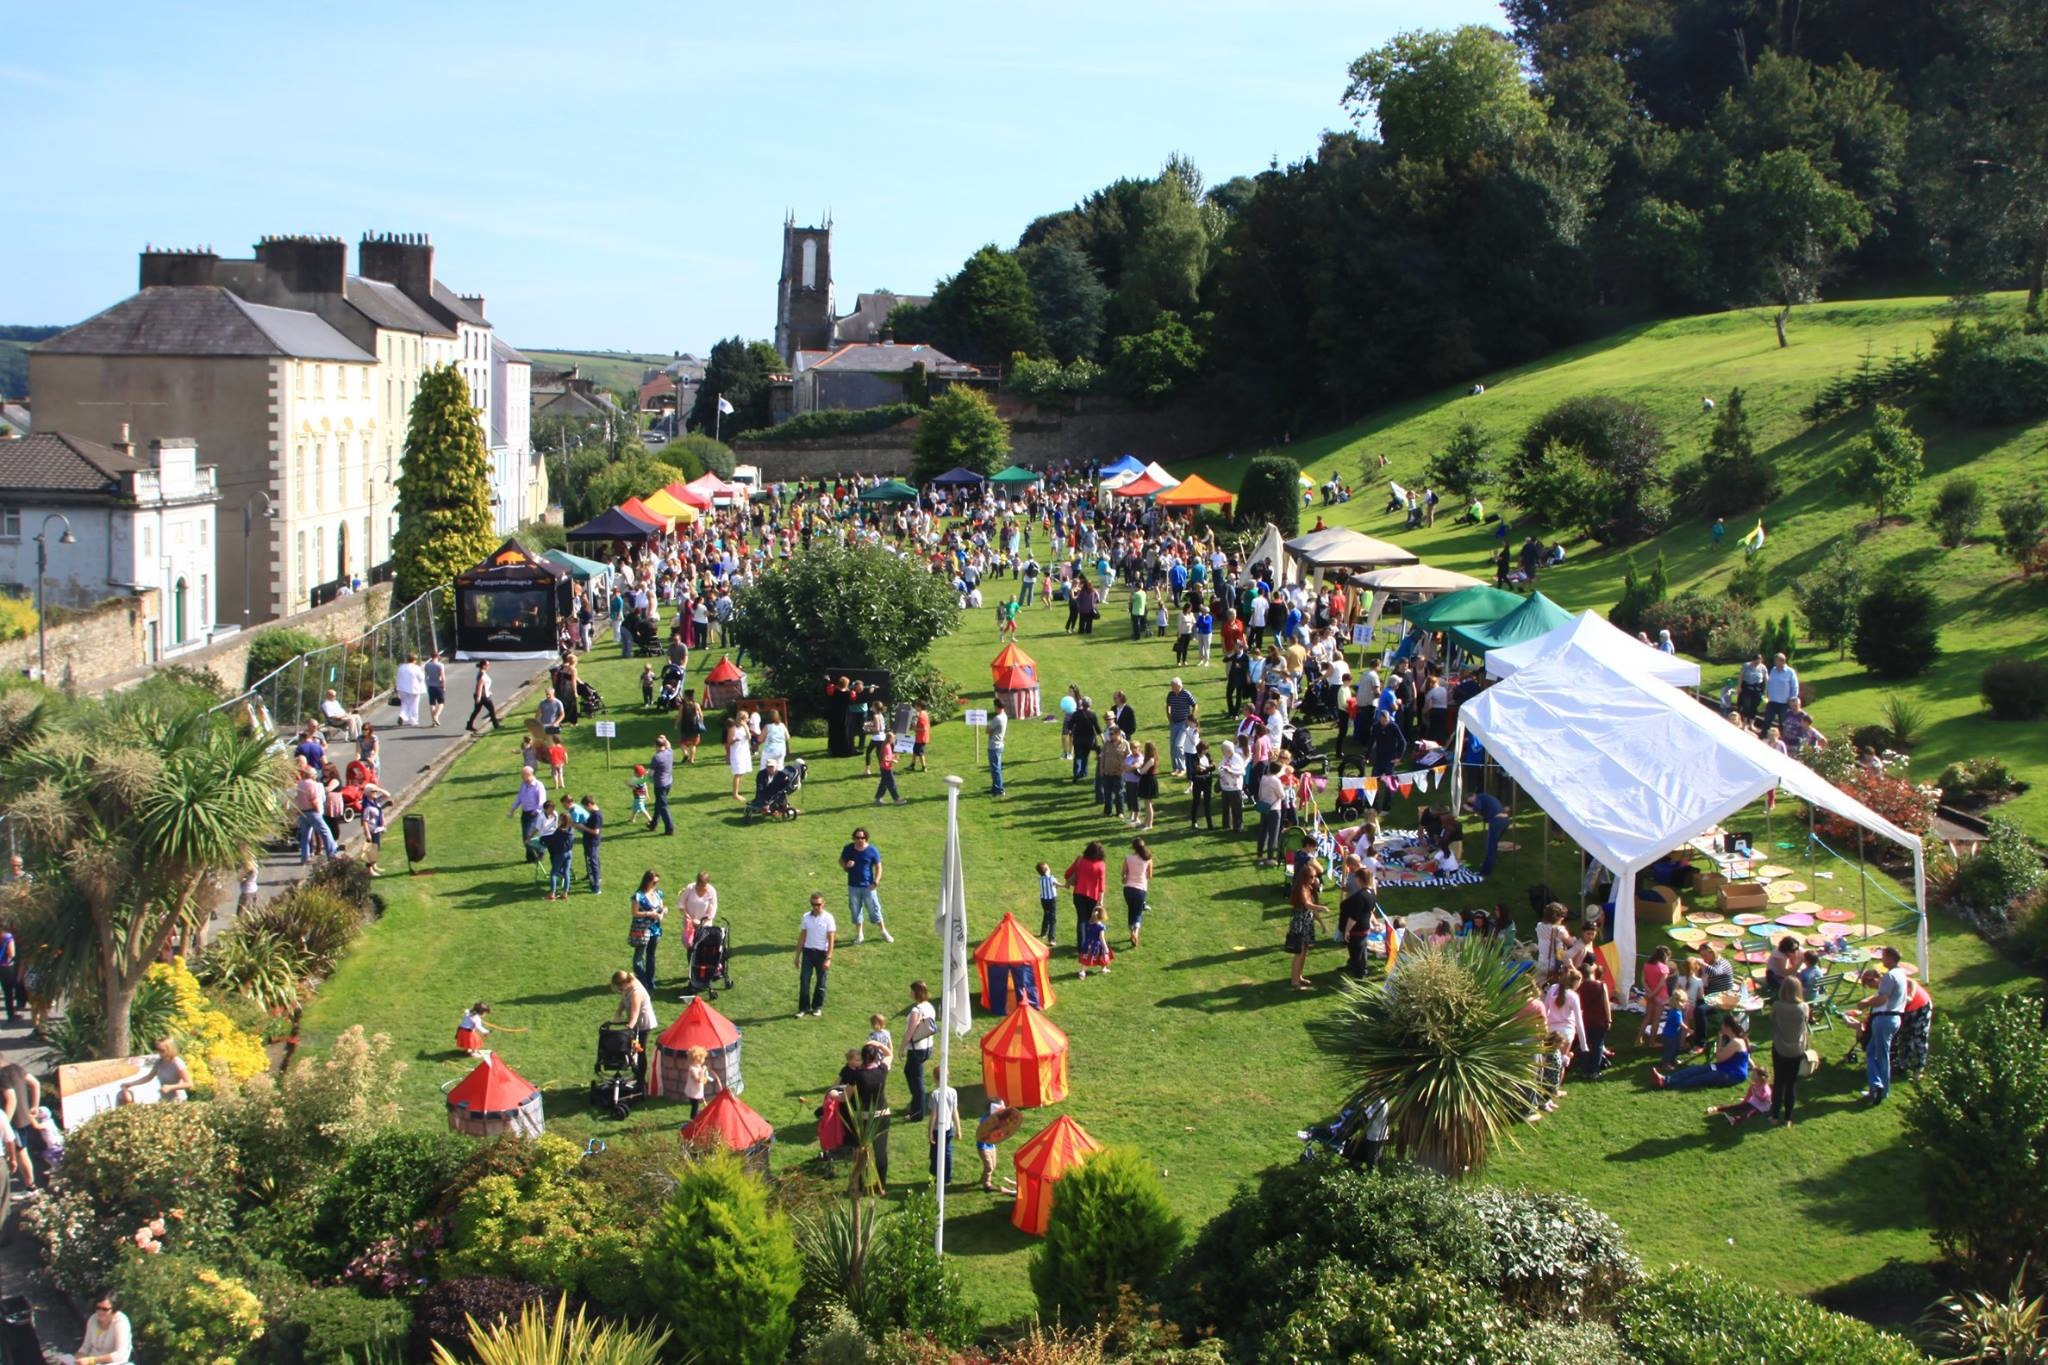 Youghal Medieval Festival - Free Family Event - Ring of Cork